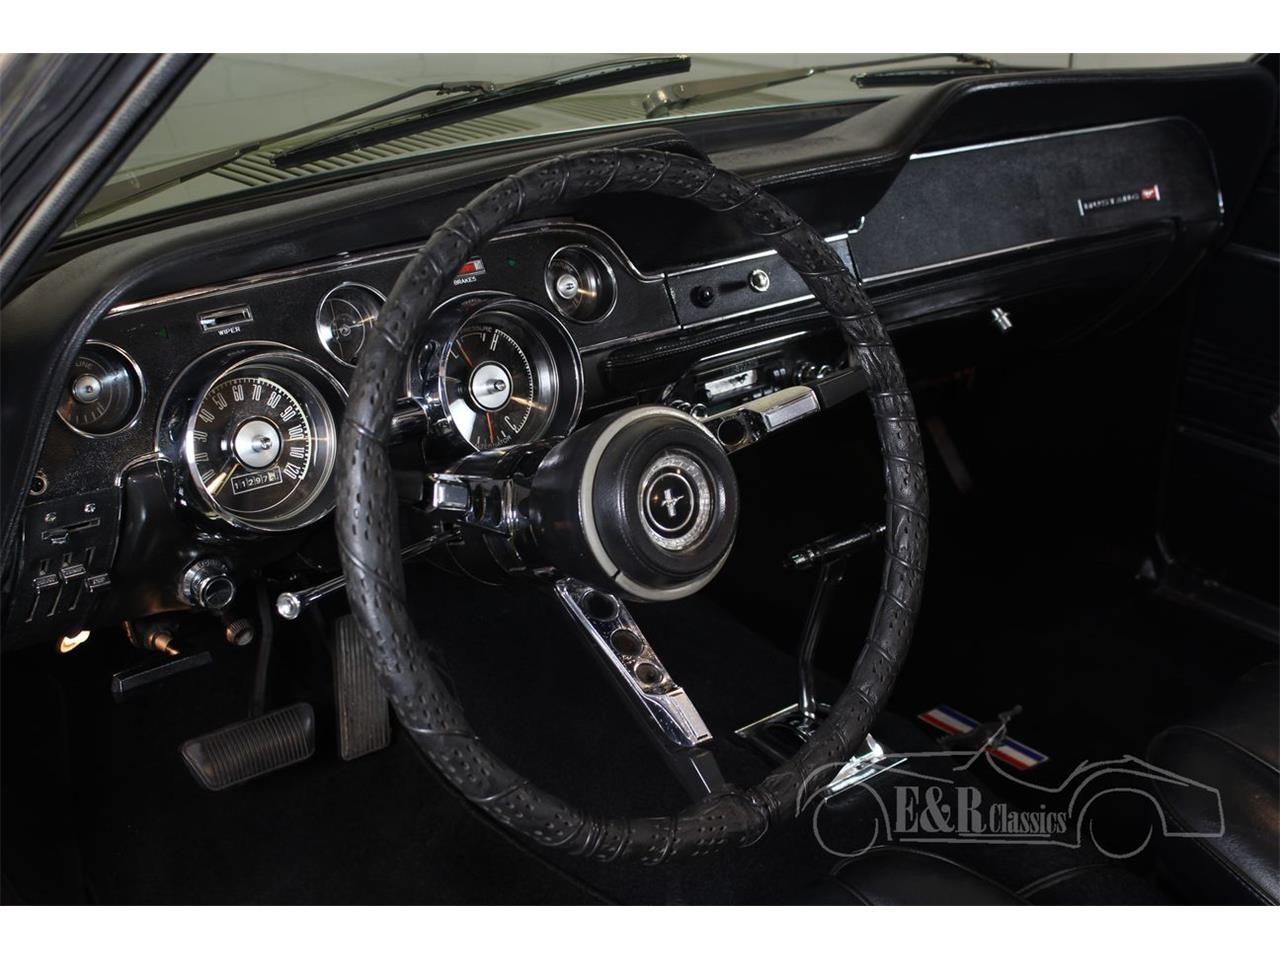 Large Picture of 1967 Ford Mustang located in Waalwijk noord brabant - $39,035.00 Offered by E & R Classics - Q2ZB